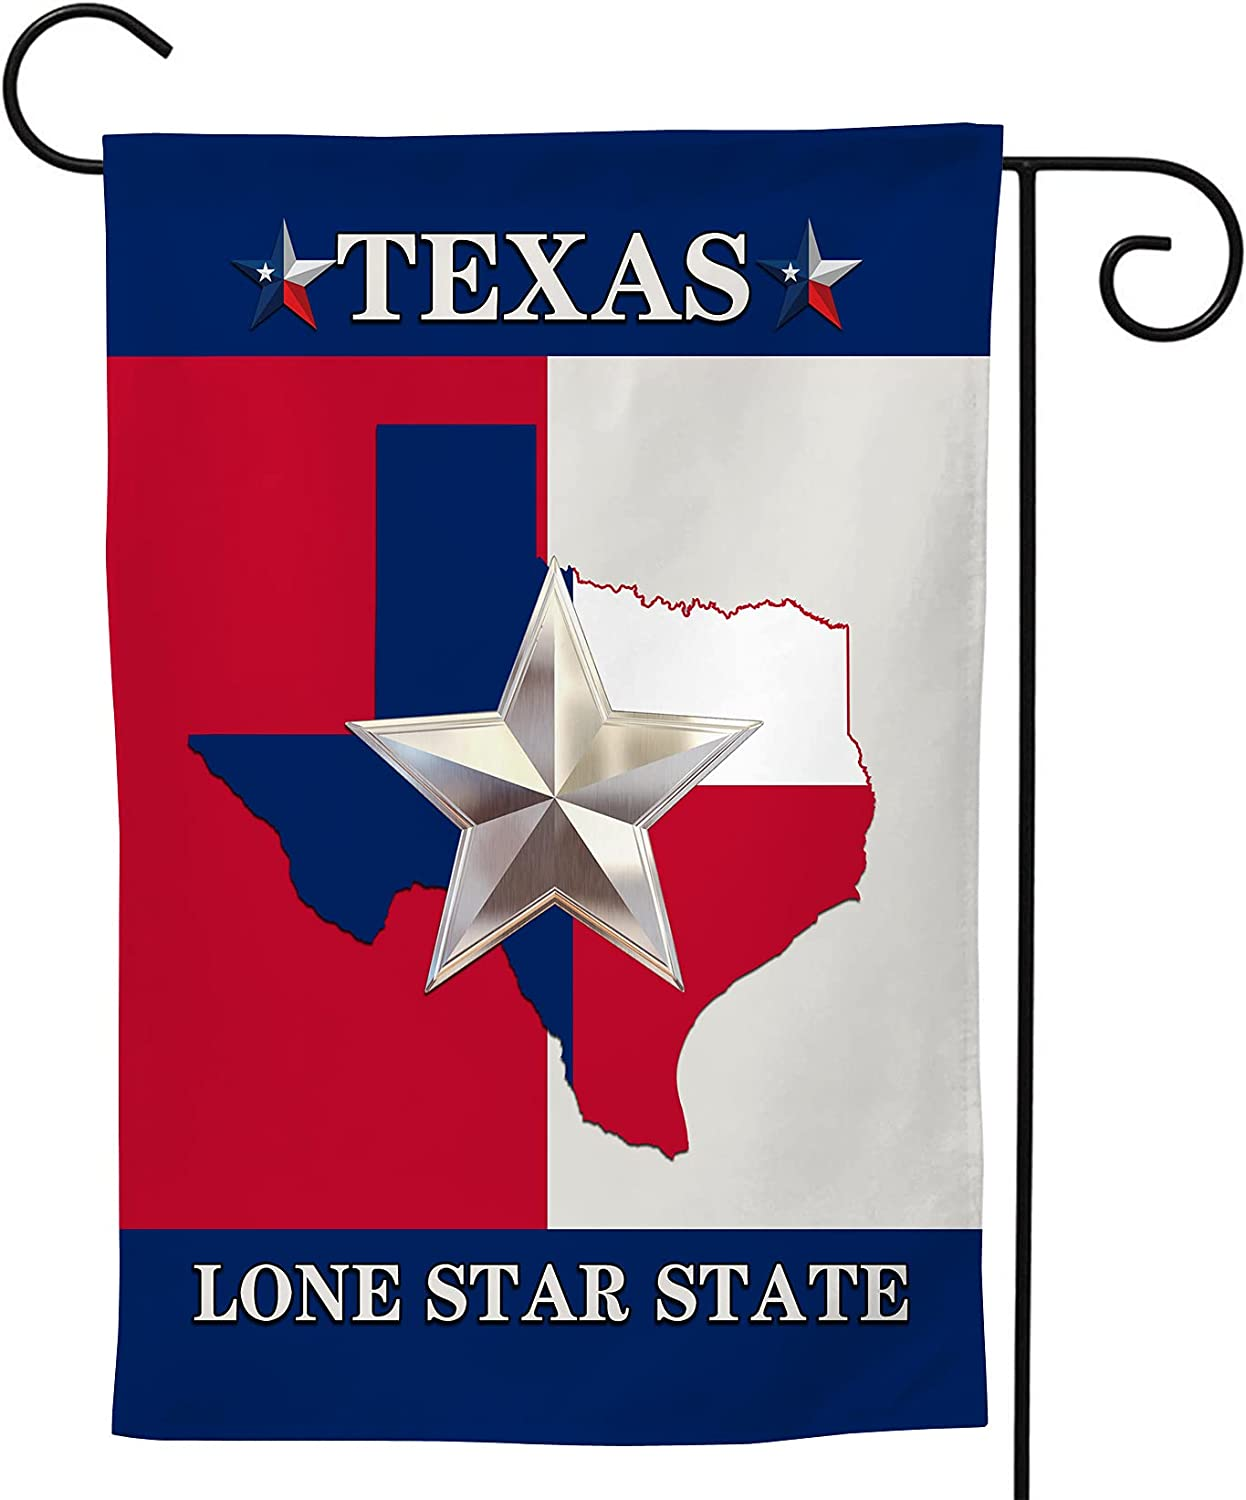 texas lone star state area Welcome Garden Flag, Summer Garden Flag Double Sided Farmhouse Flag for Outside 12.5×18 Inch